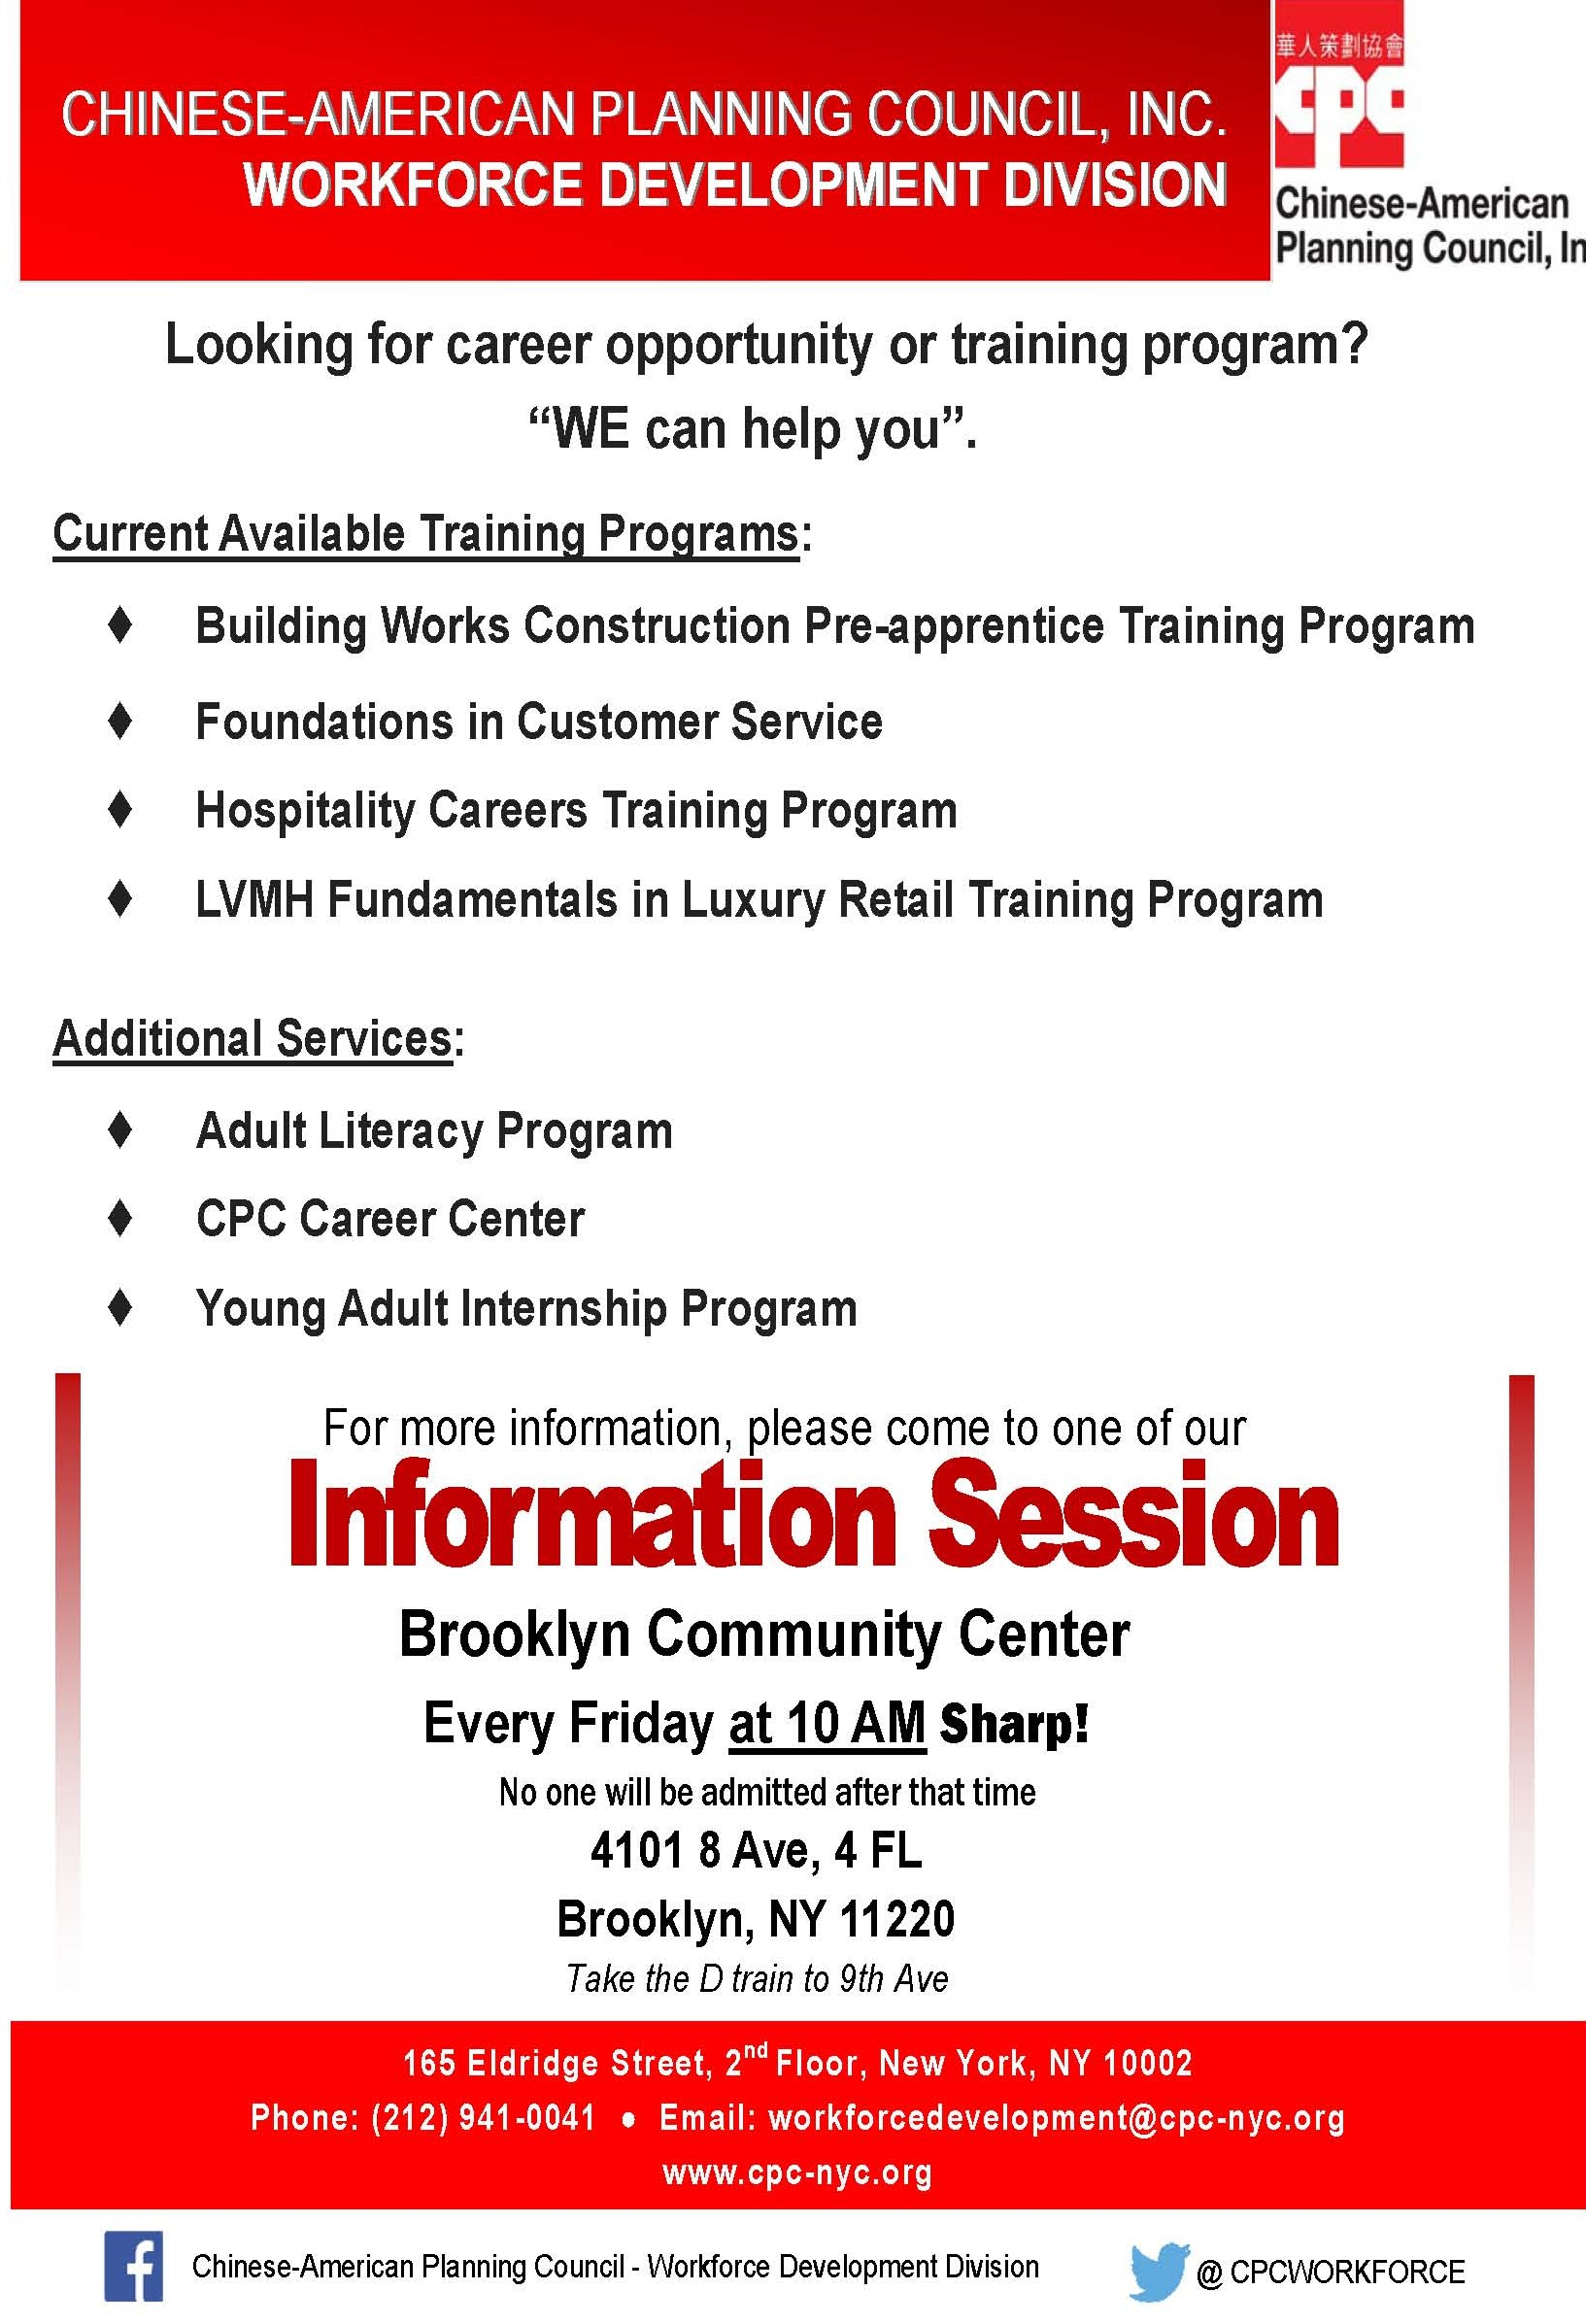 Workforce Development Division Brooklyn Information Session